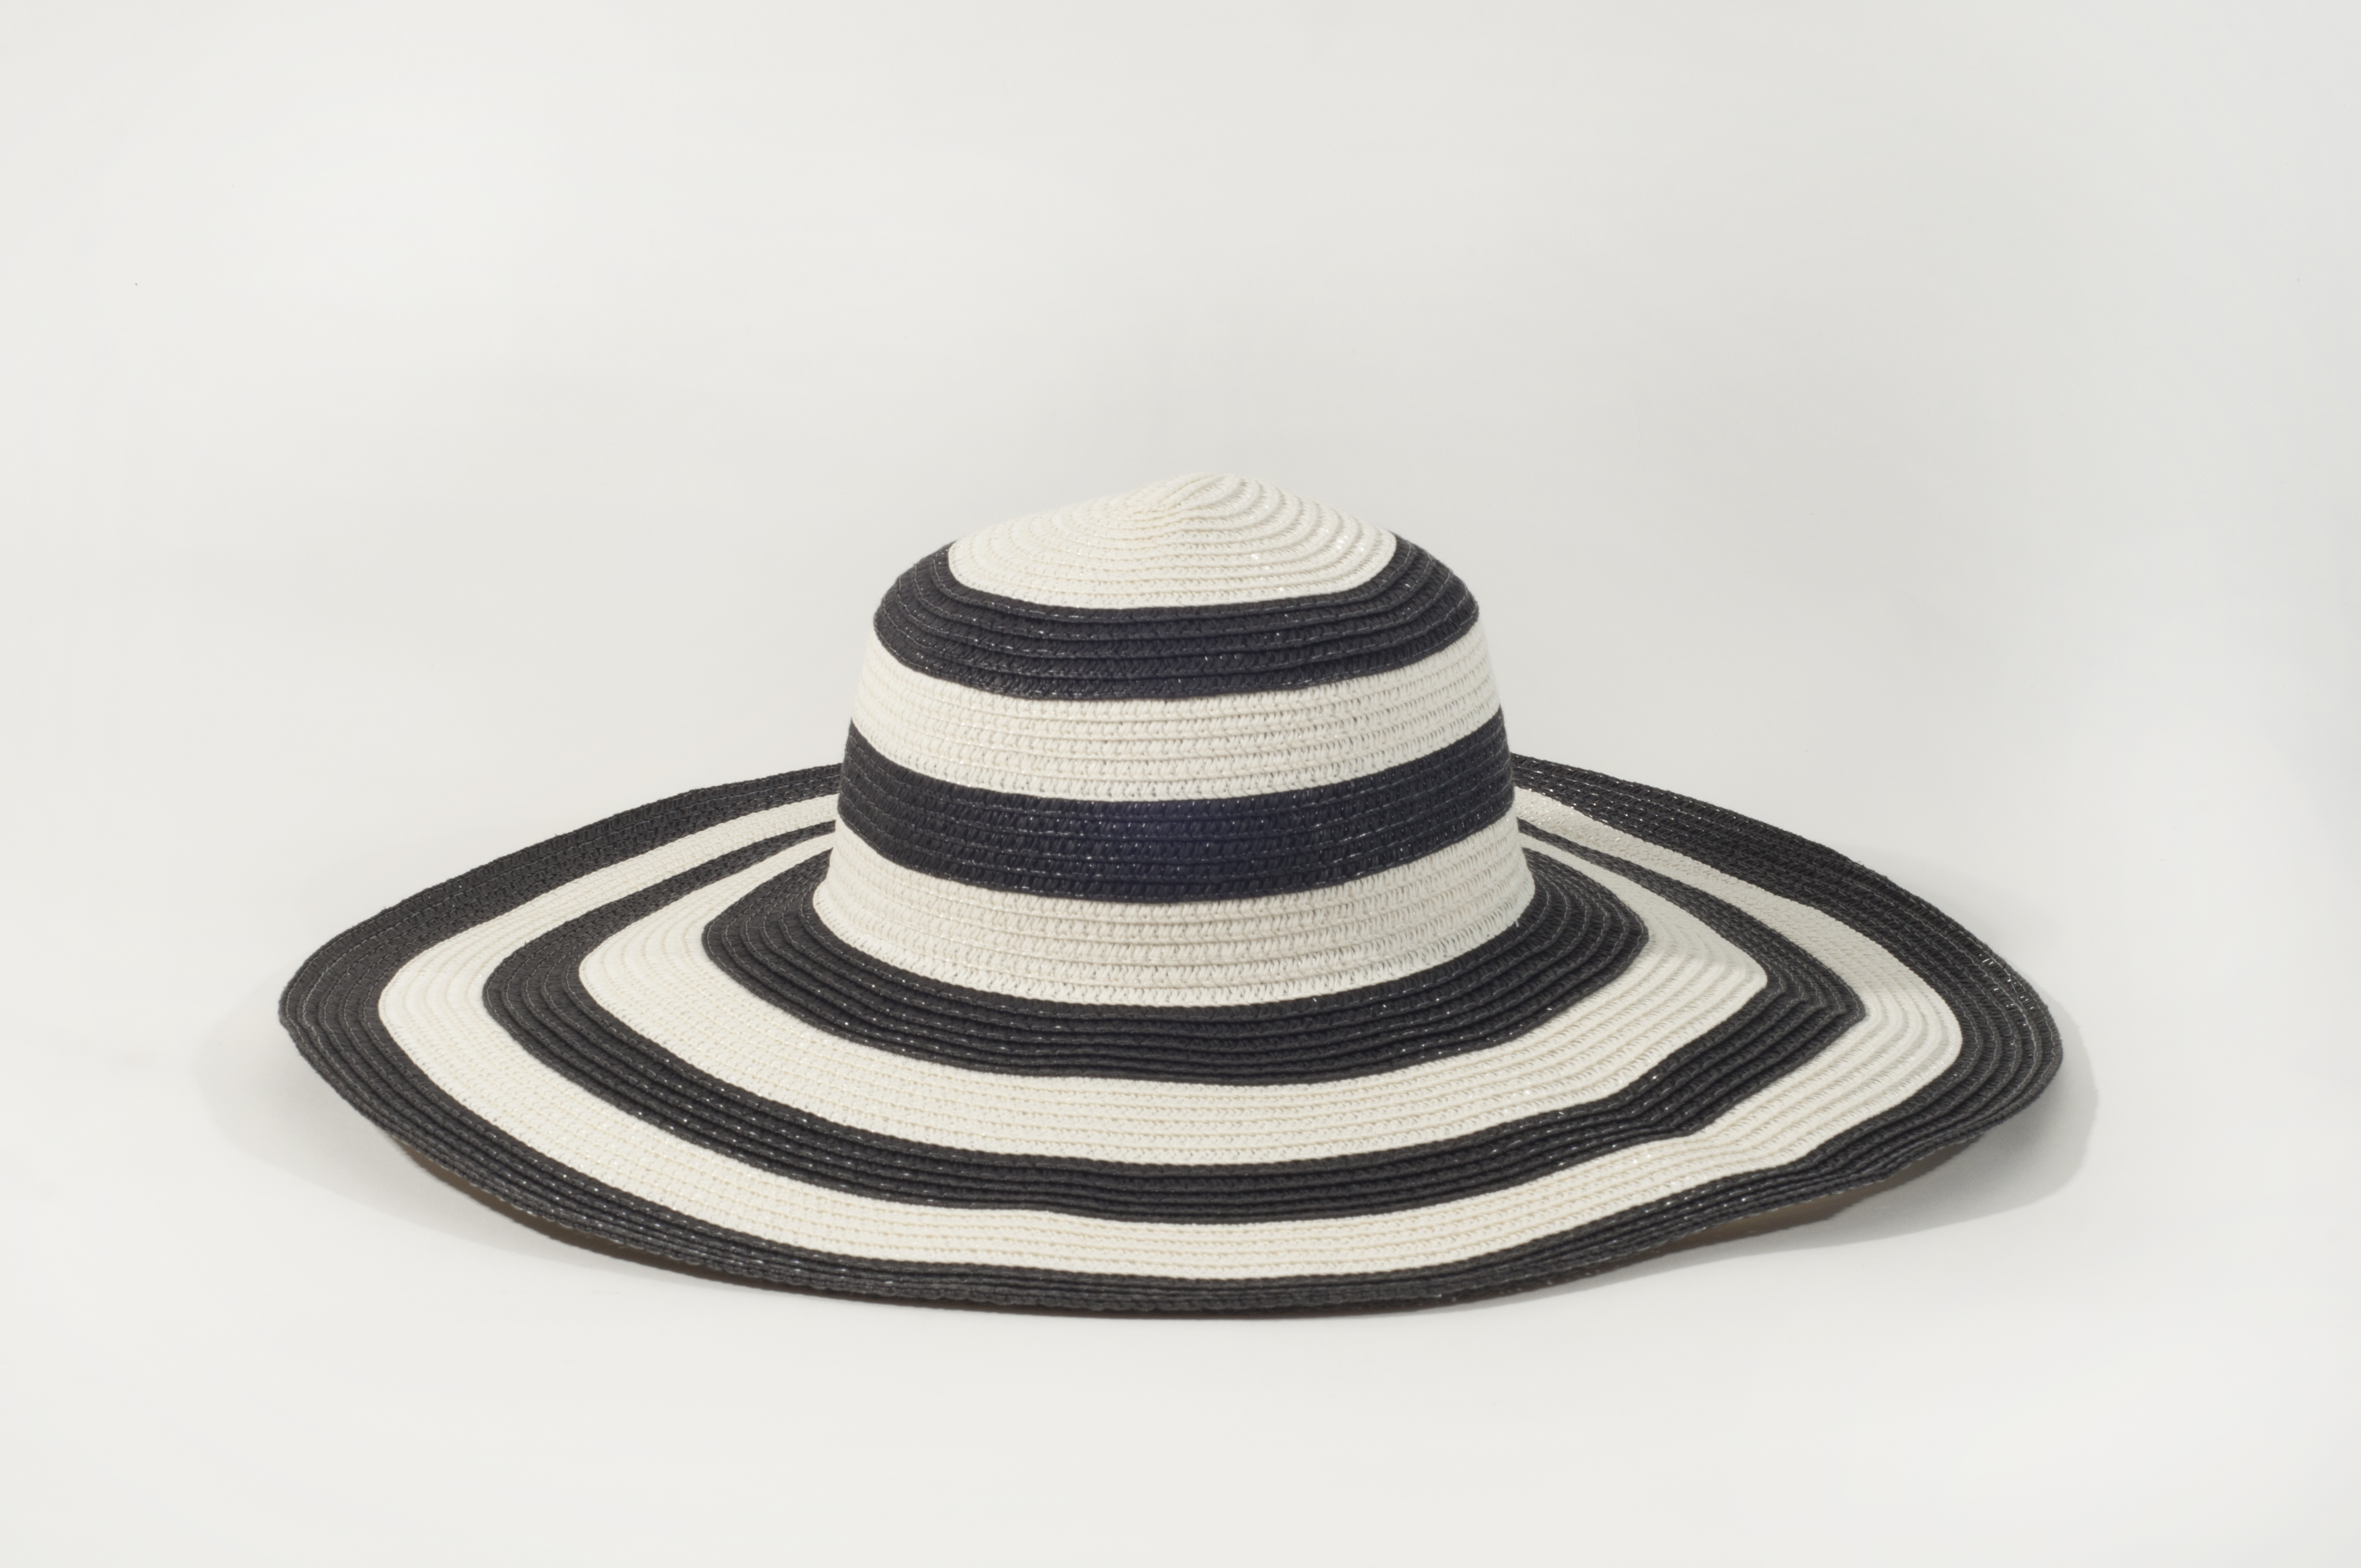 Black and White Large Brim Hat - Bettylicious 18a2b8d8c214